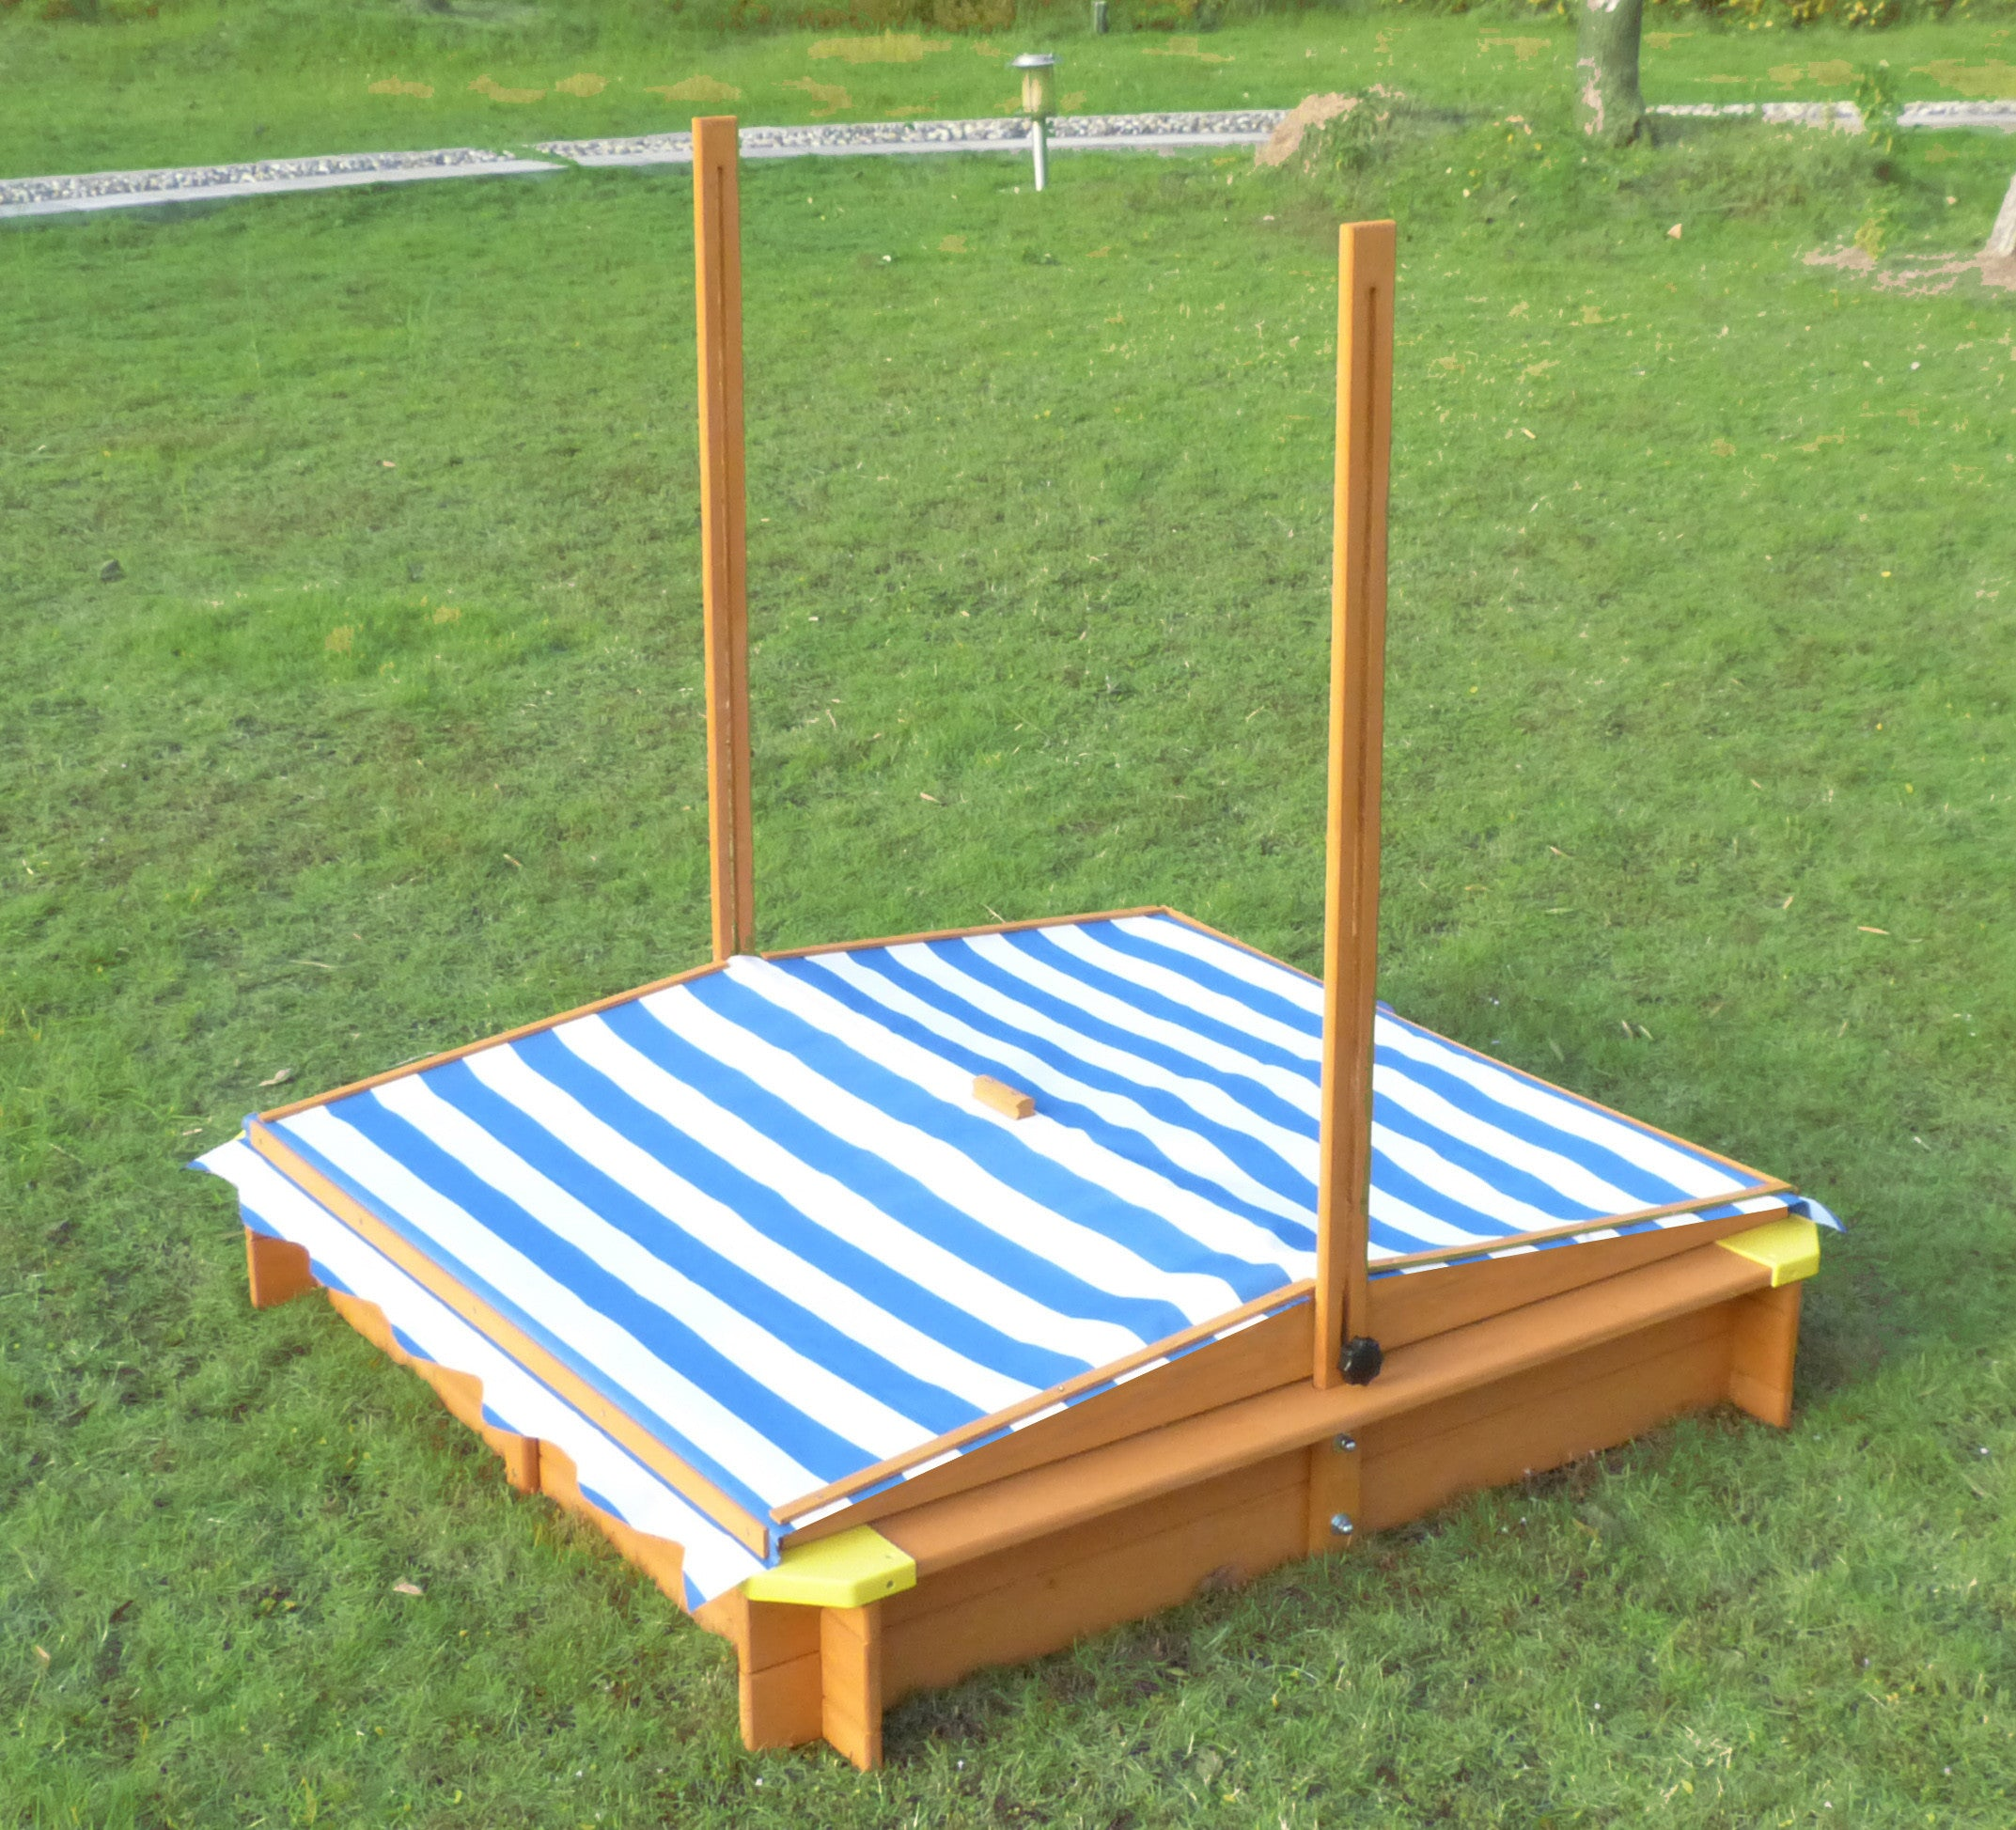 ... Kidu0027s Outside Playground Sandbox with Retractable Canopy Sandbox - Yardify. ... : sandbox canopy - memphite.com